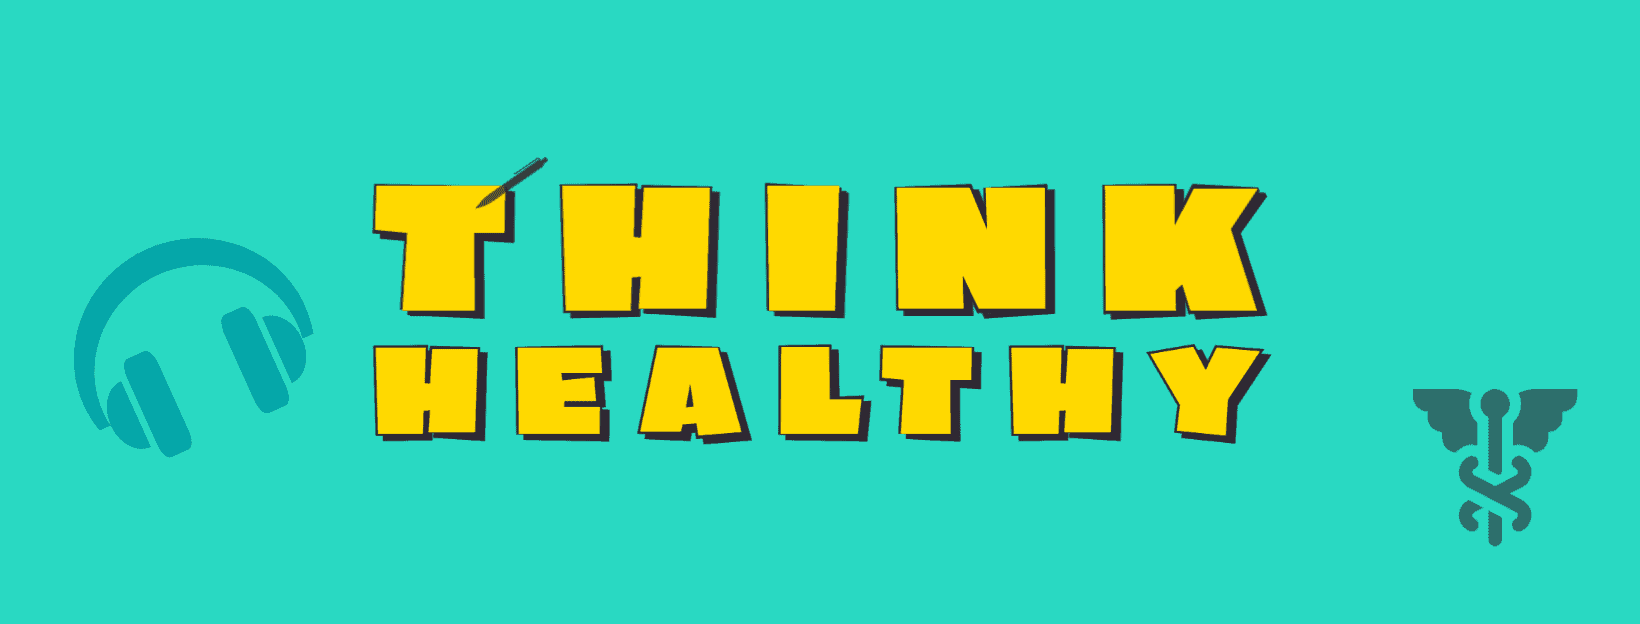 Think healthy doctor